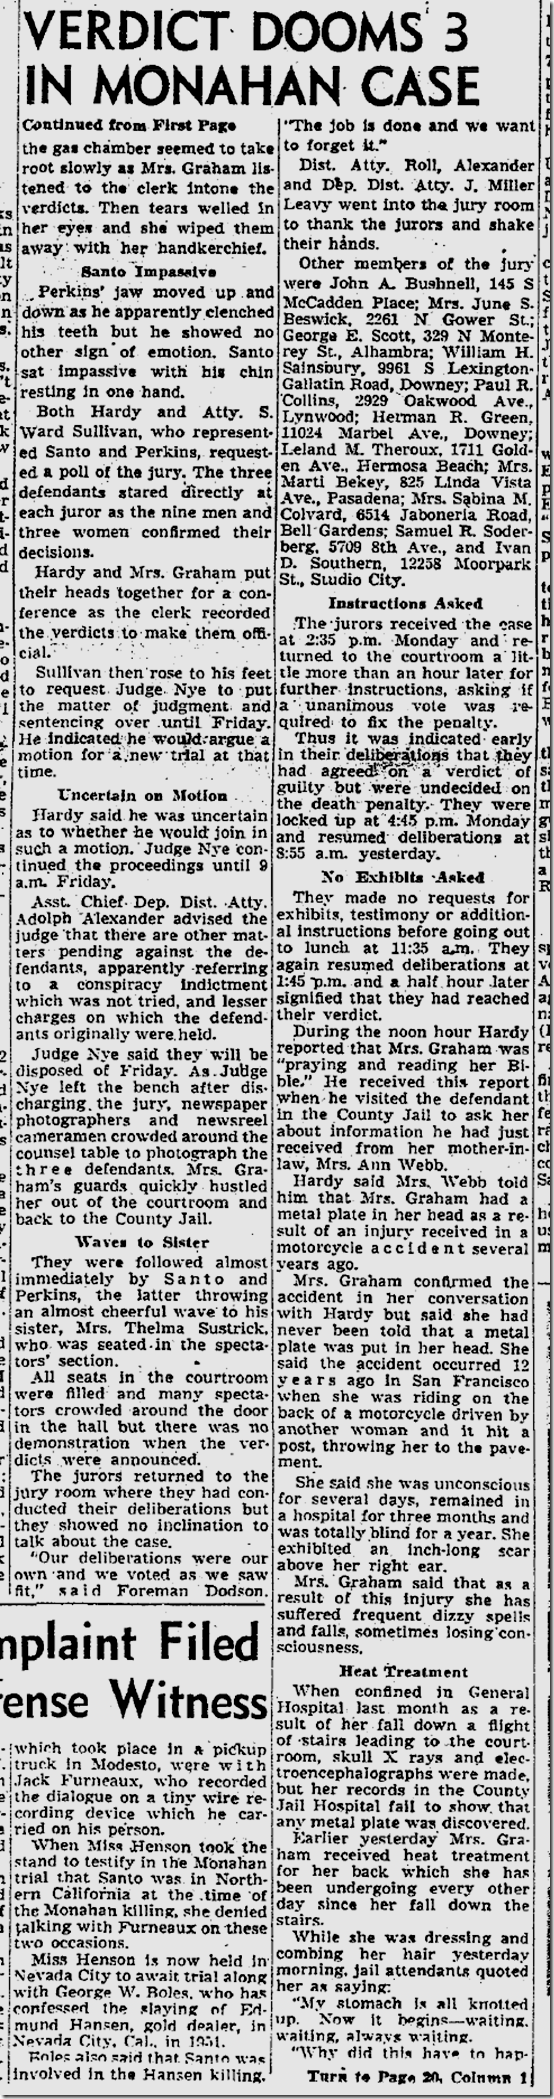 Sept. 23, 1953, Barbara Graham Convicted